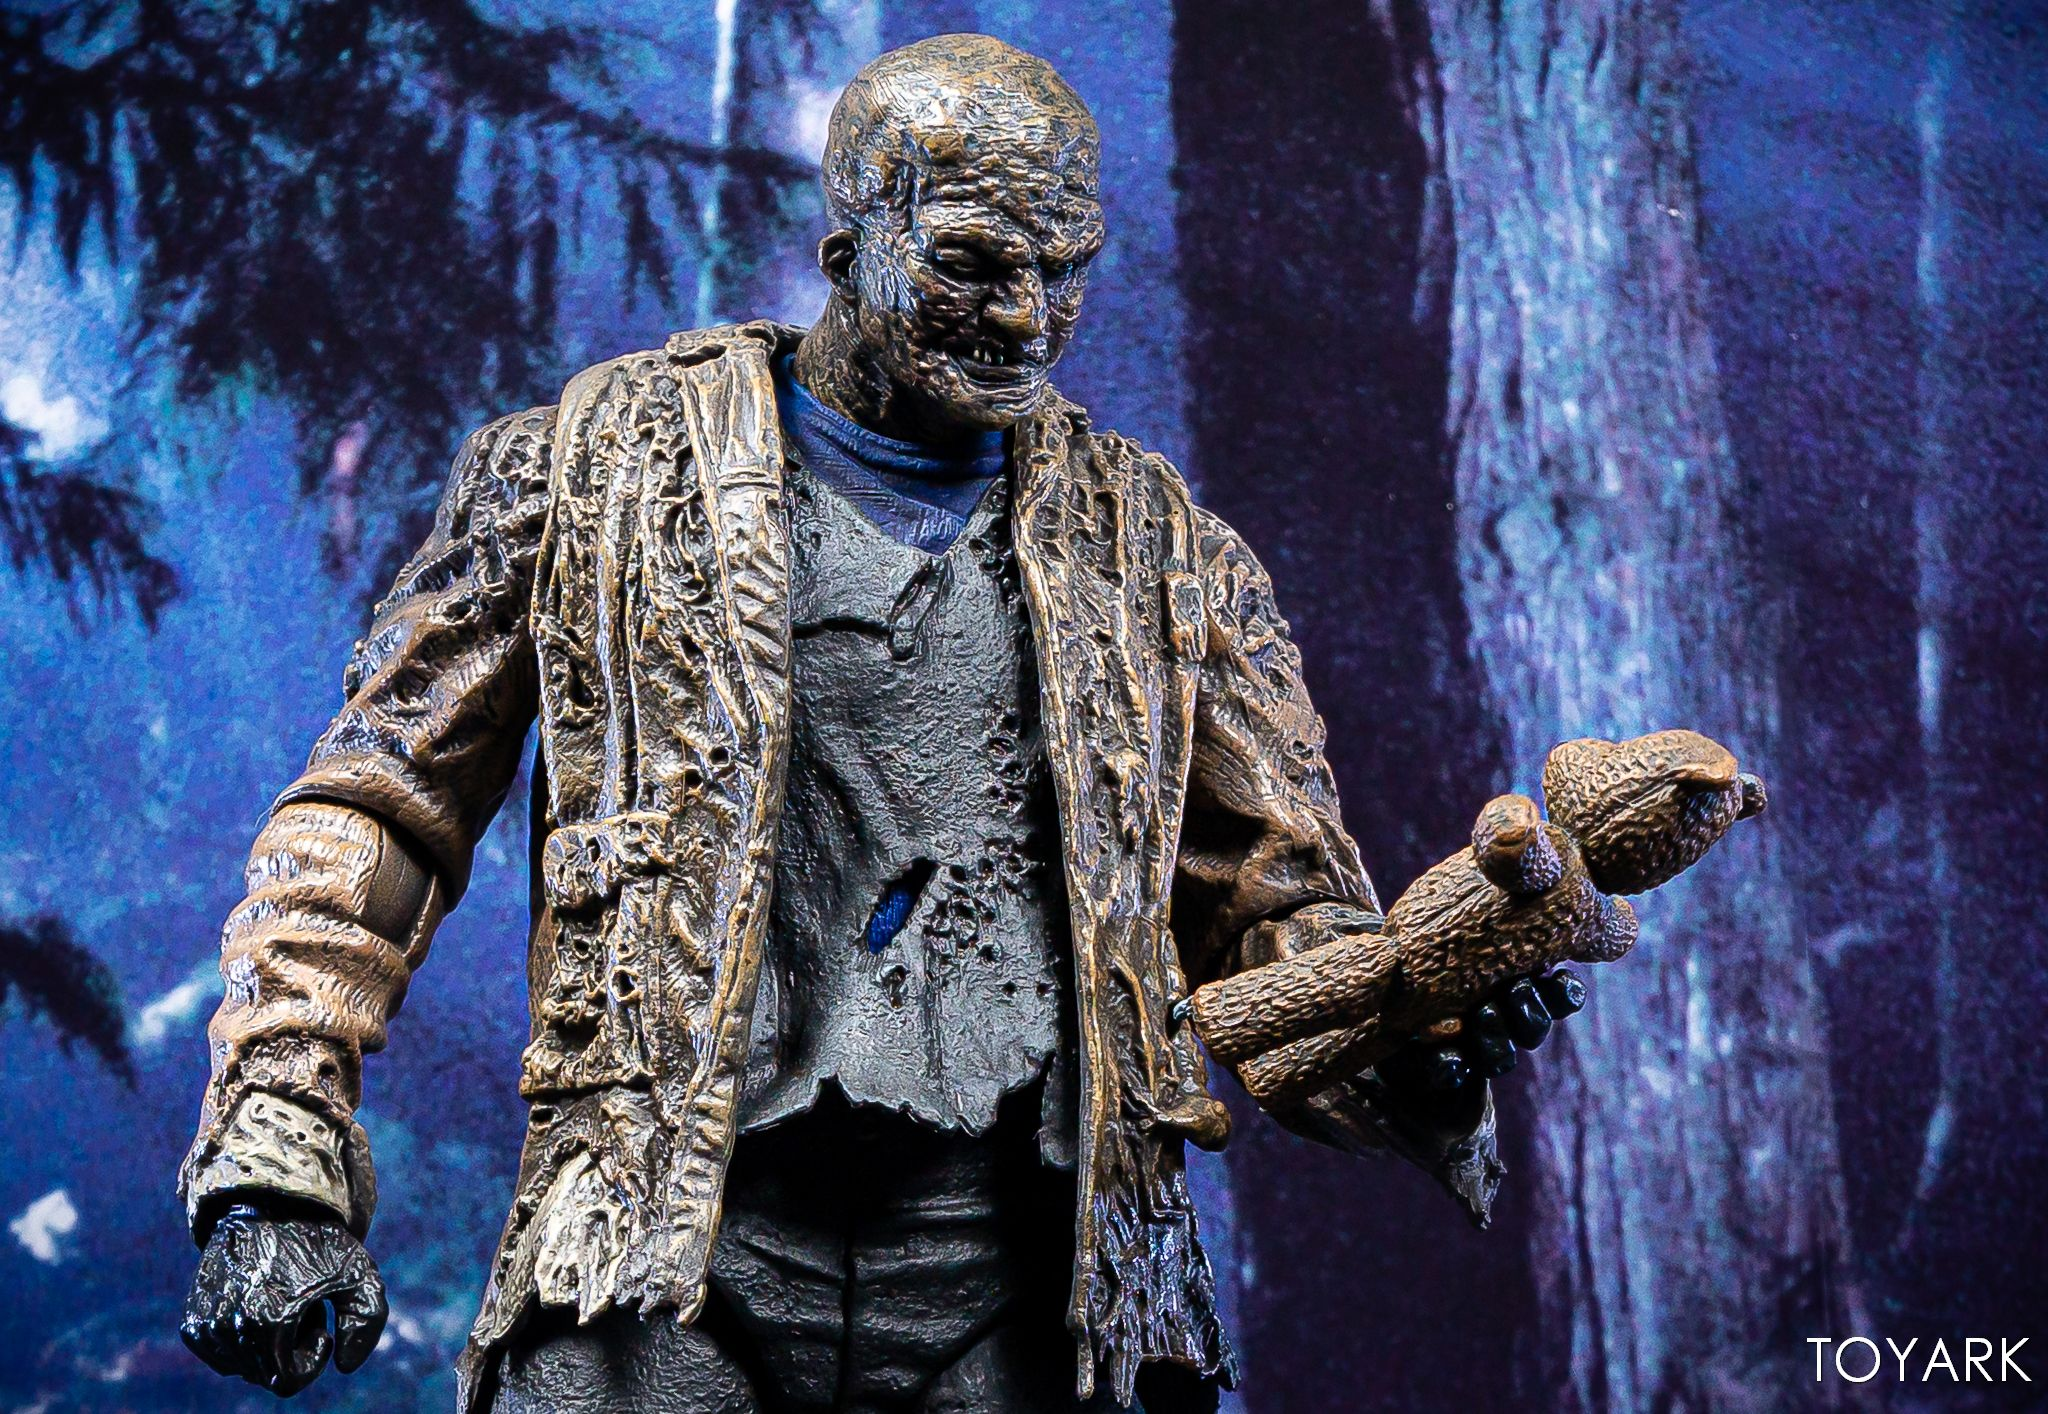 https://news.toyark.com/wp-content/uploads/sites/4/2019/07/FvJ-Jason-Voorhees-NECA-023.jpg